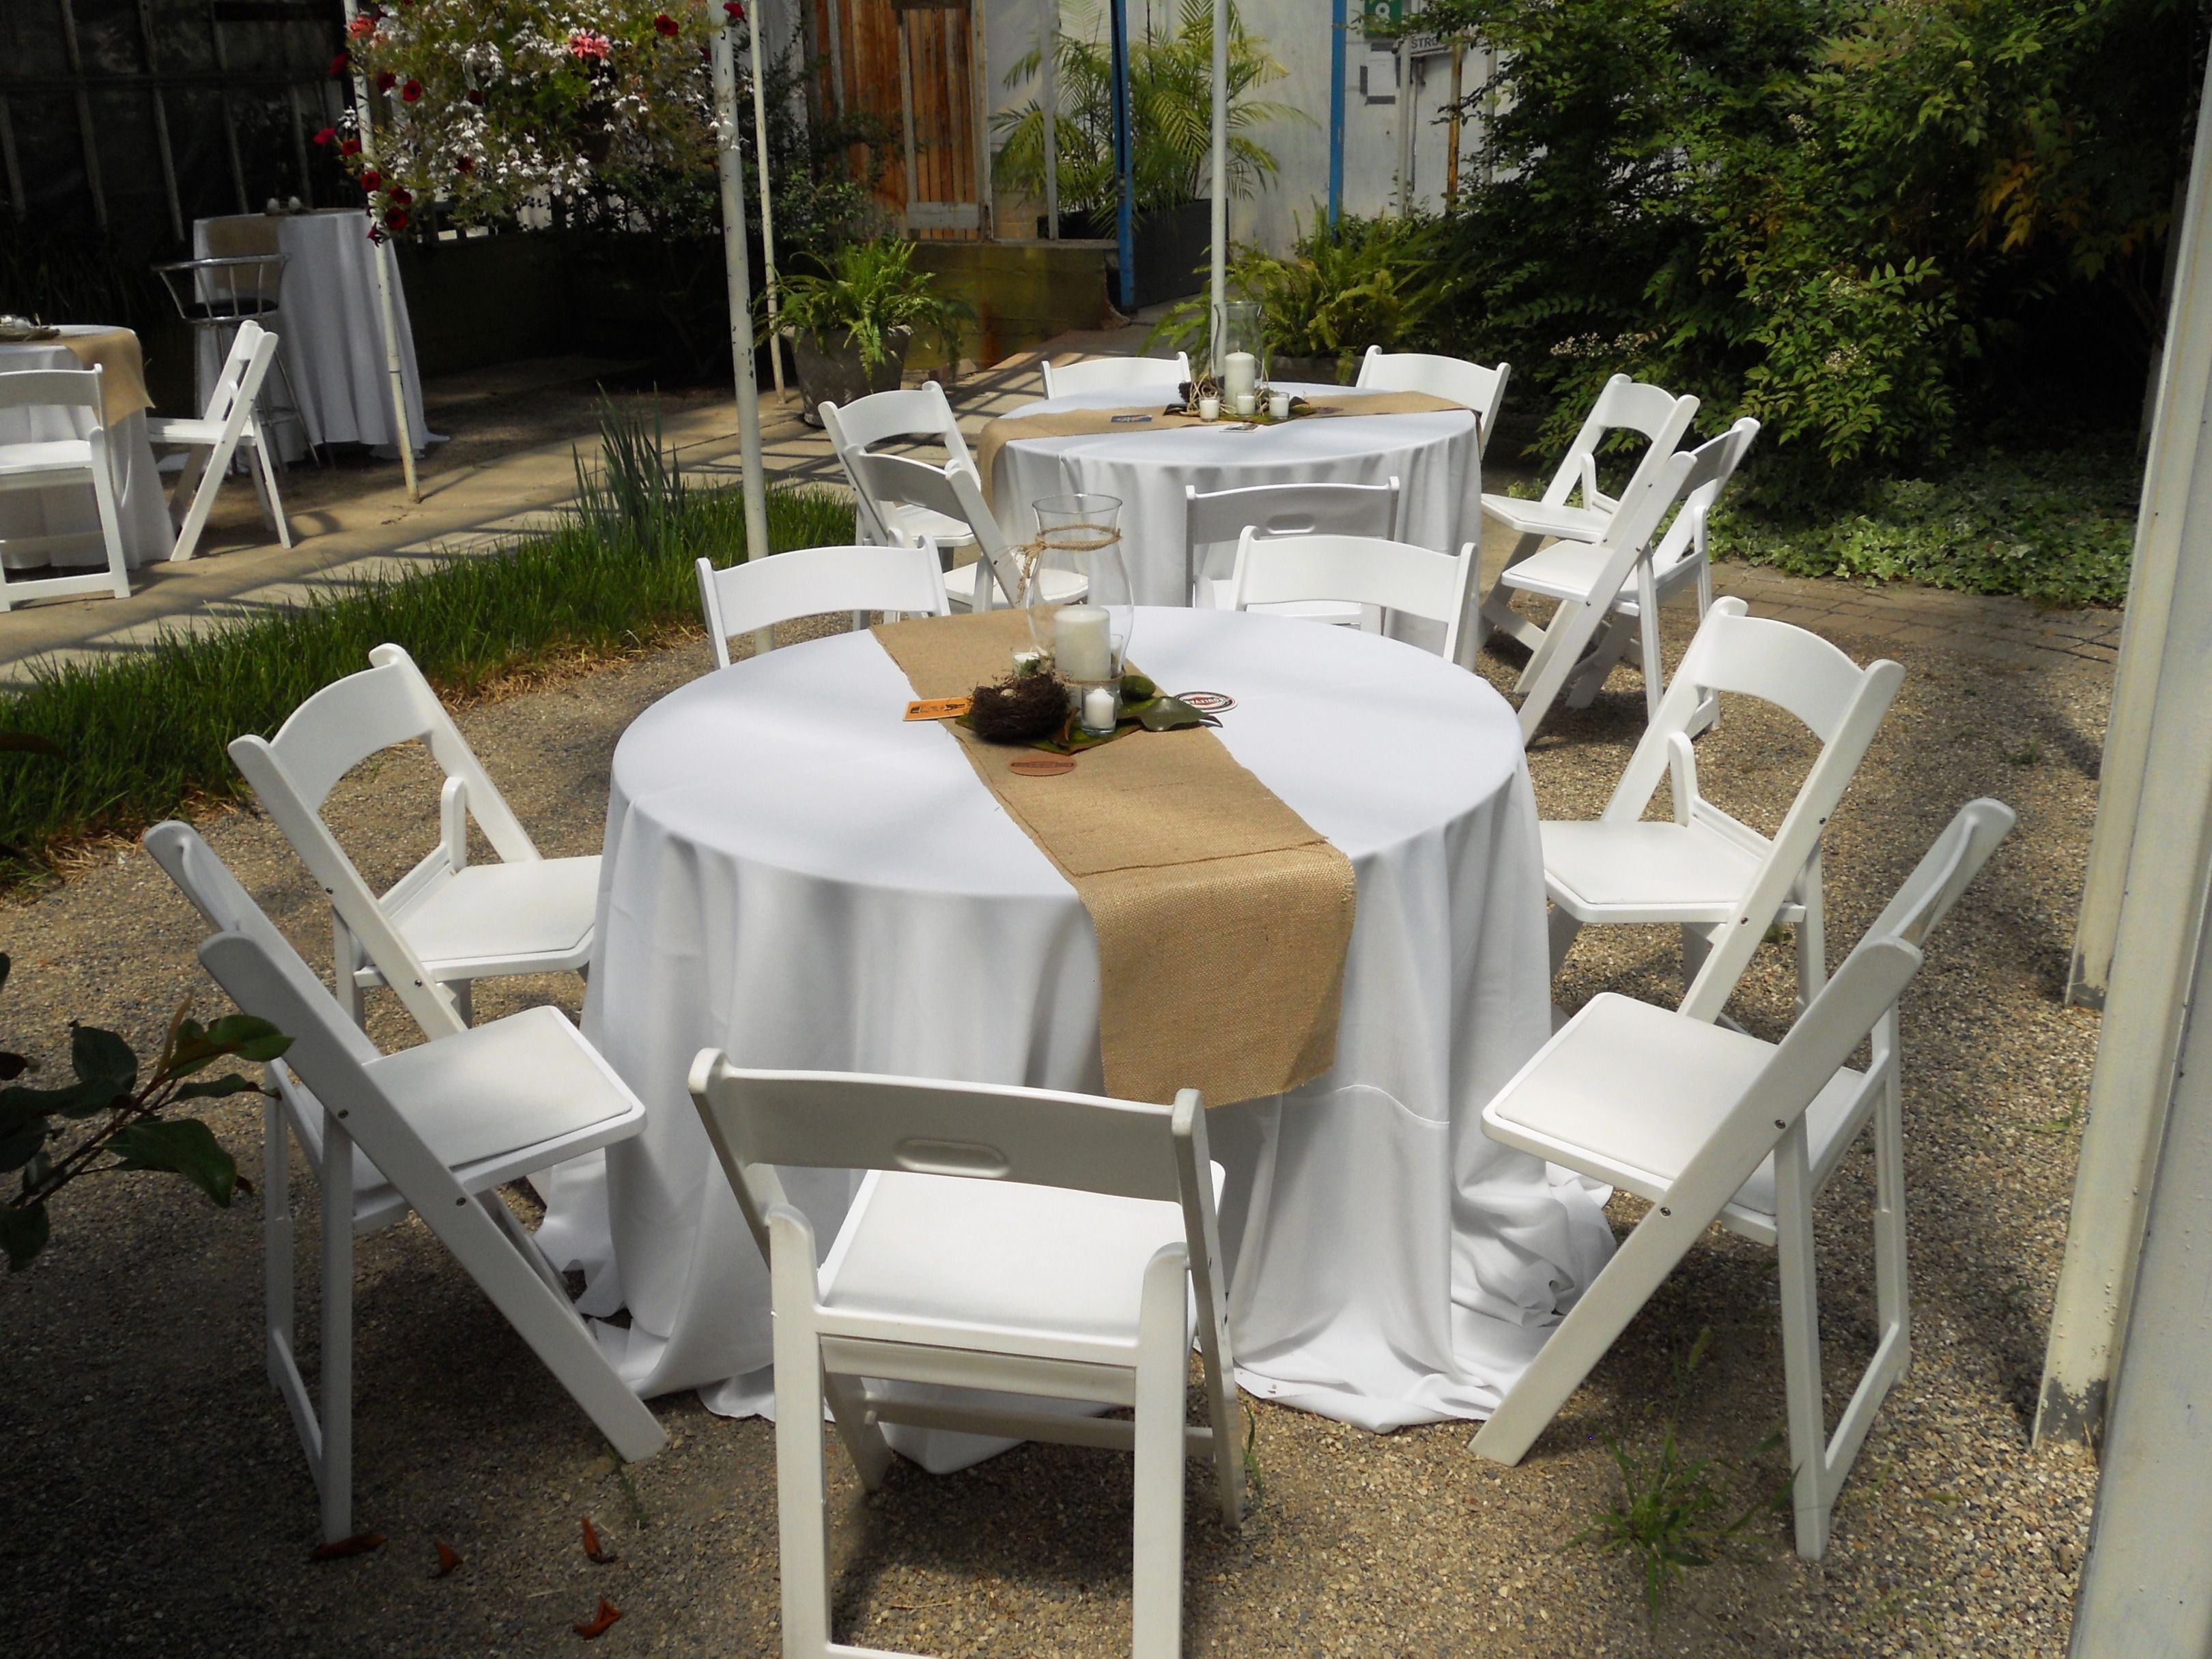 Table runner on round table - For That Vintage Look With A Elegant Flair Our Round Table W White Linen And Burlap Runner And Our White Resin Folding Chairs Pro